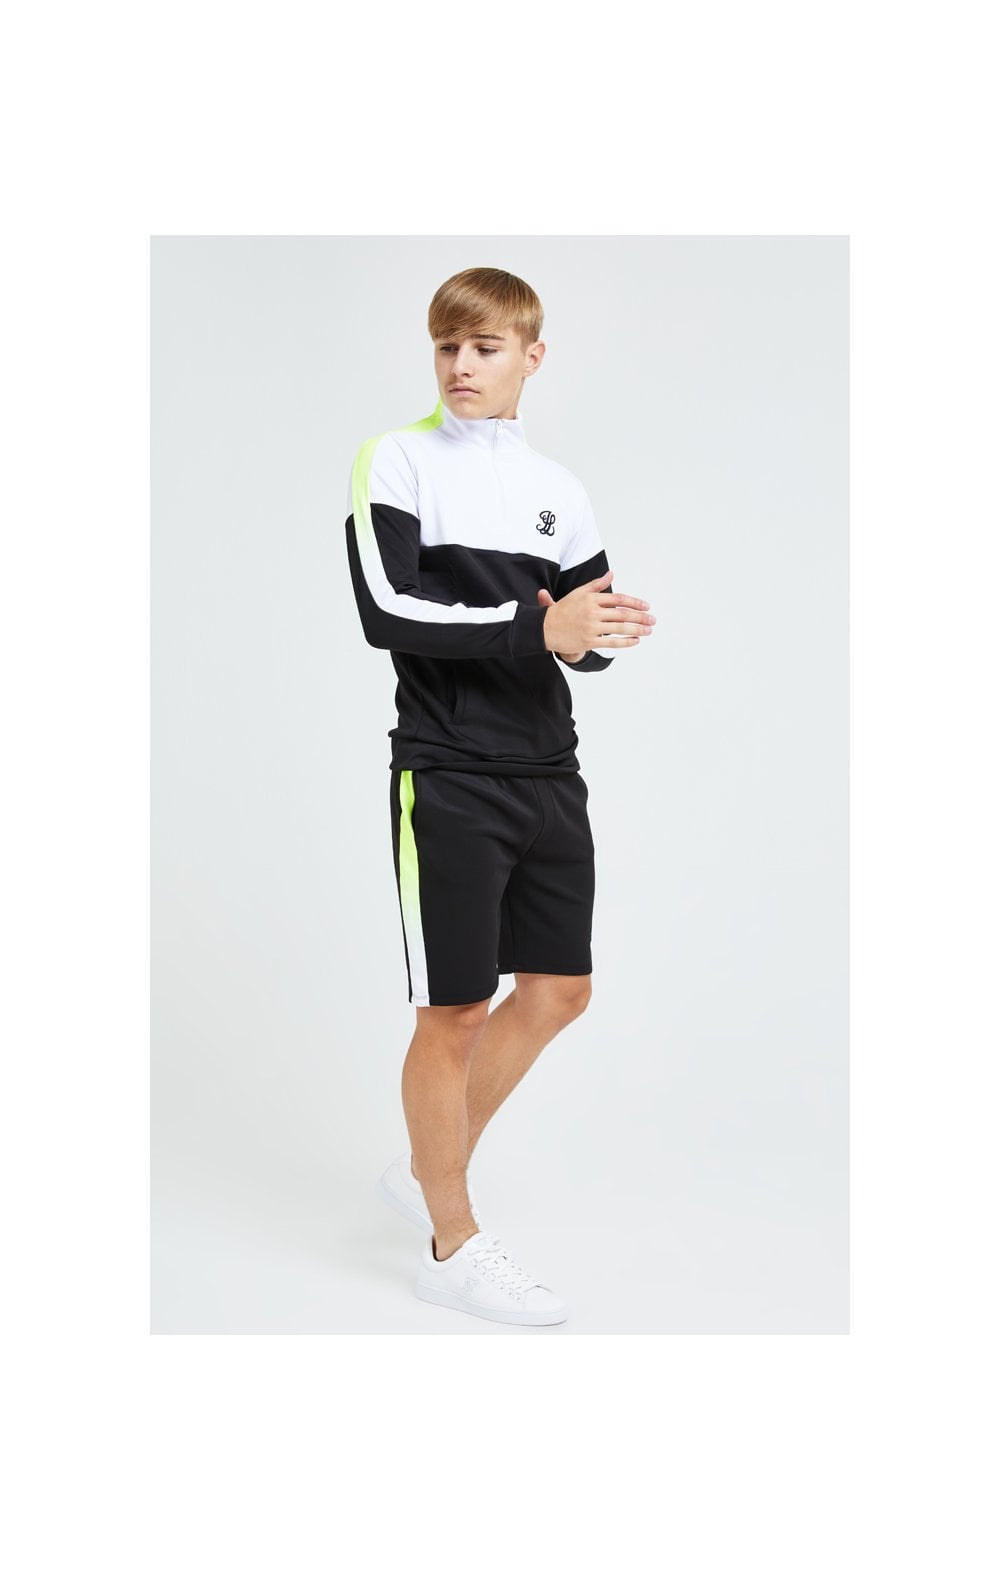 Illusive London Fade Funnel Neck Hoodie - Black,White & Neon Yellow (8)